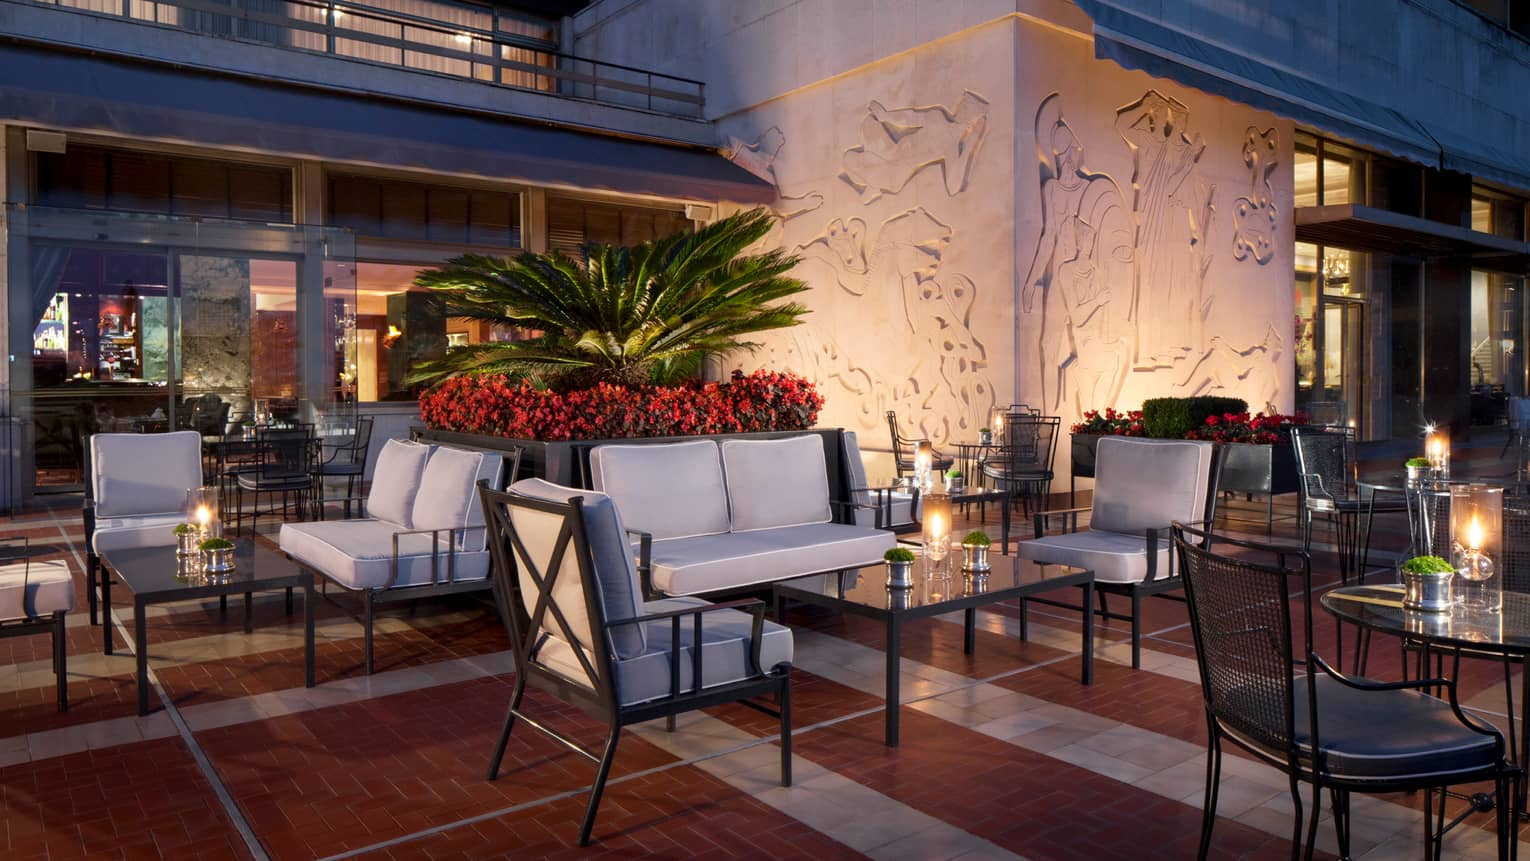 Ritz Bar outdoor patio lounge at night with cushioned chairs and loveseats around candle-lit cocktail tables